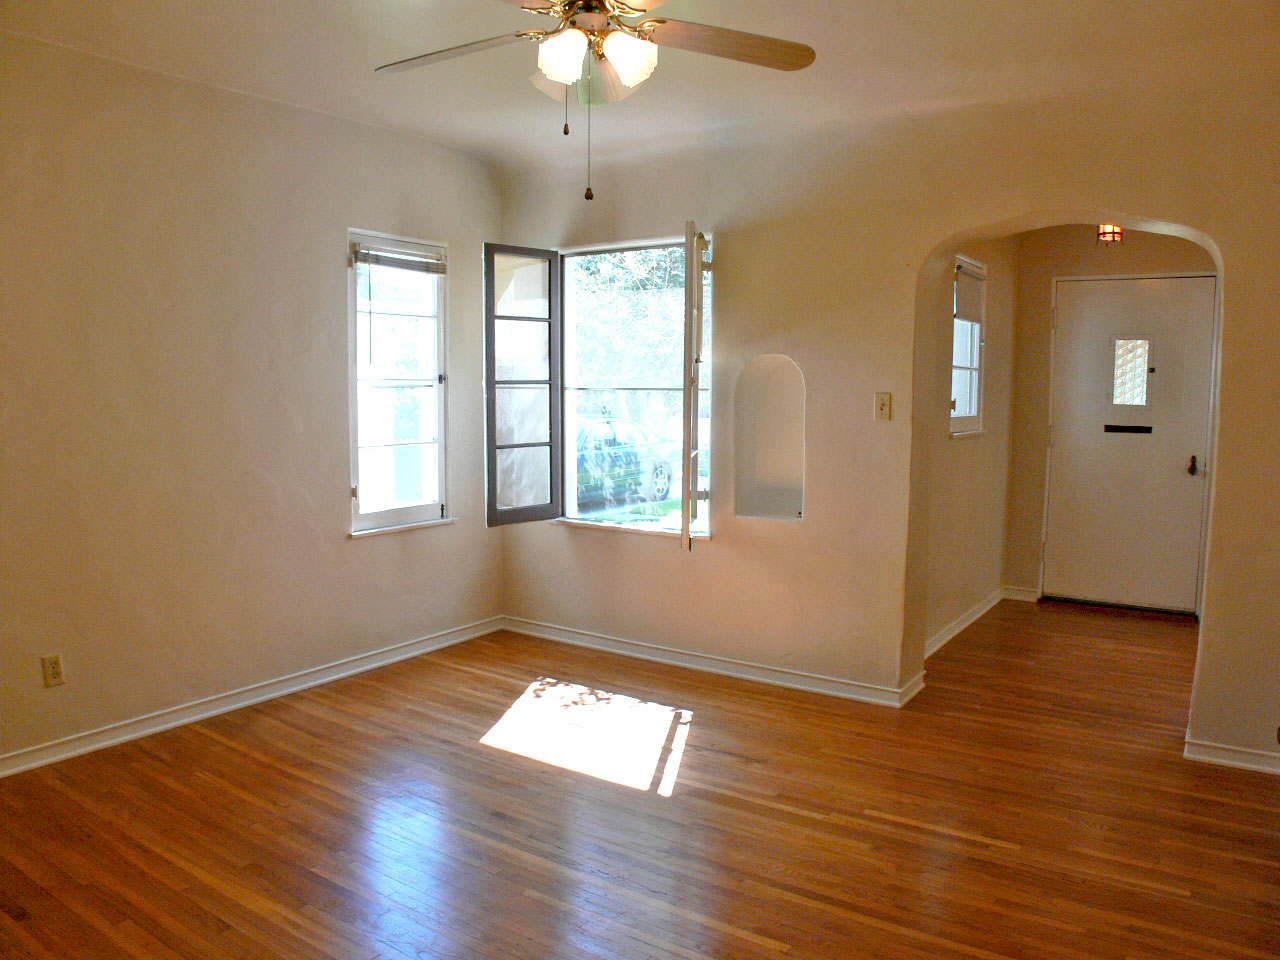 Formal Dining Room With Period Telephone Alcove Original Wood Cat Windows Coved Ceiling And Hardwood Floors